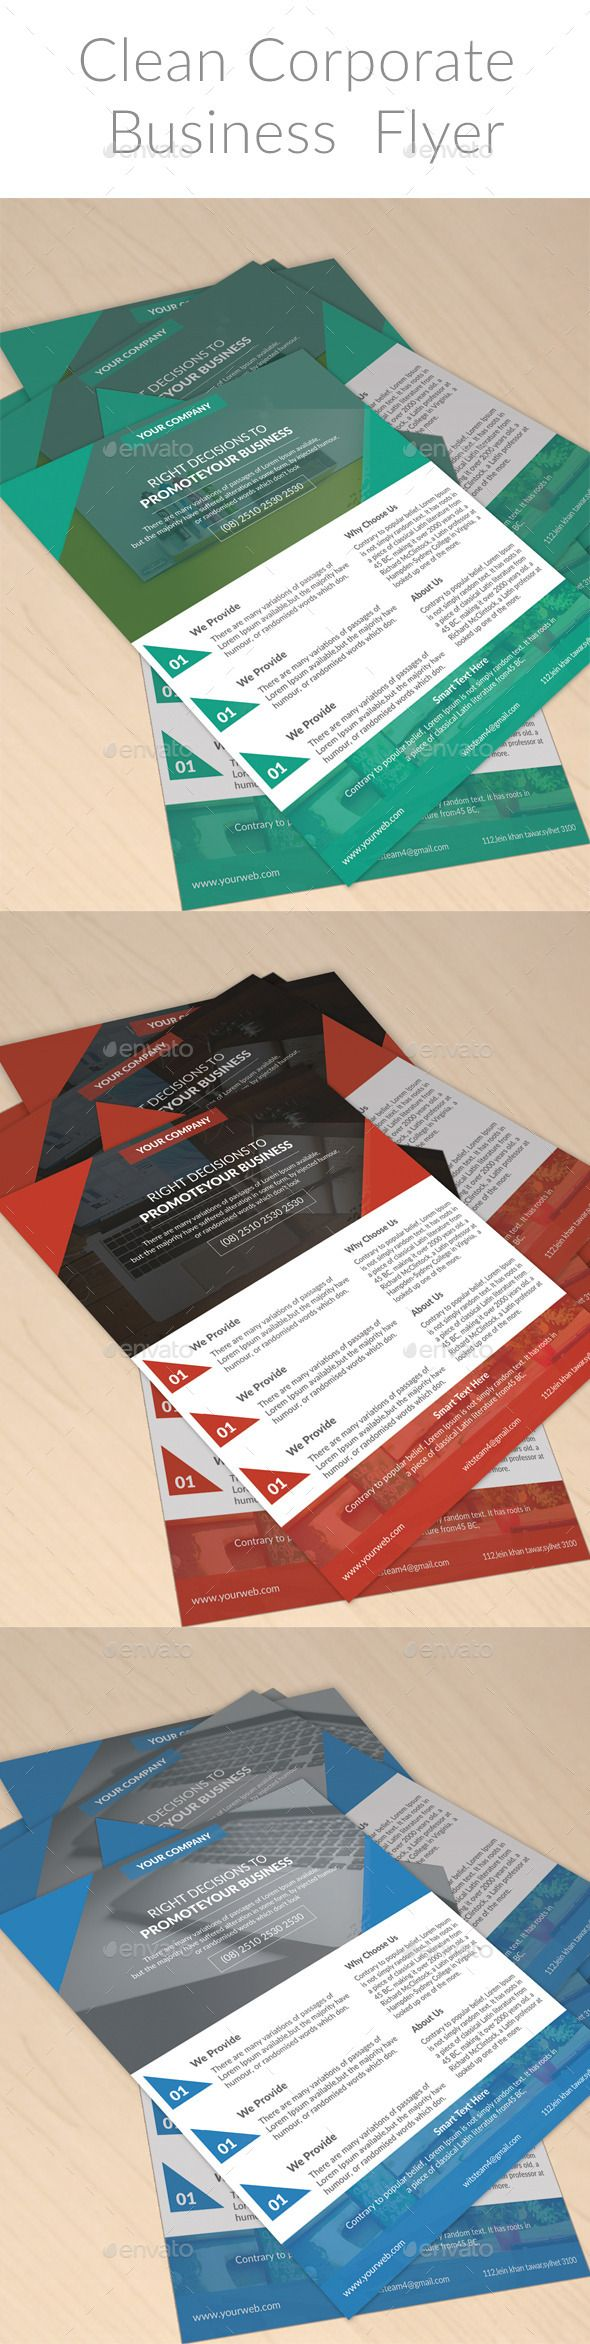 Clean Corporate  Business  Flyer Template - Corporate Flyers